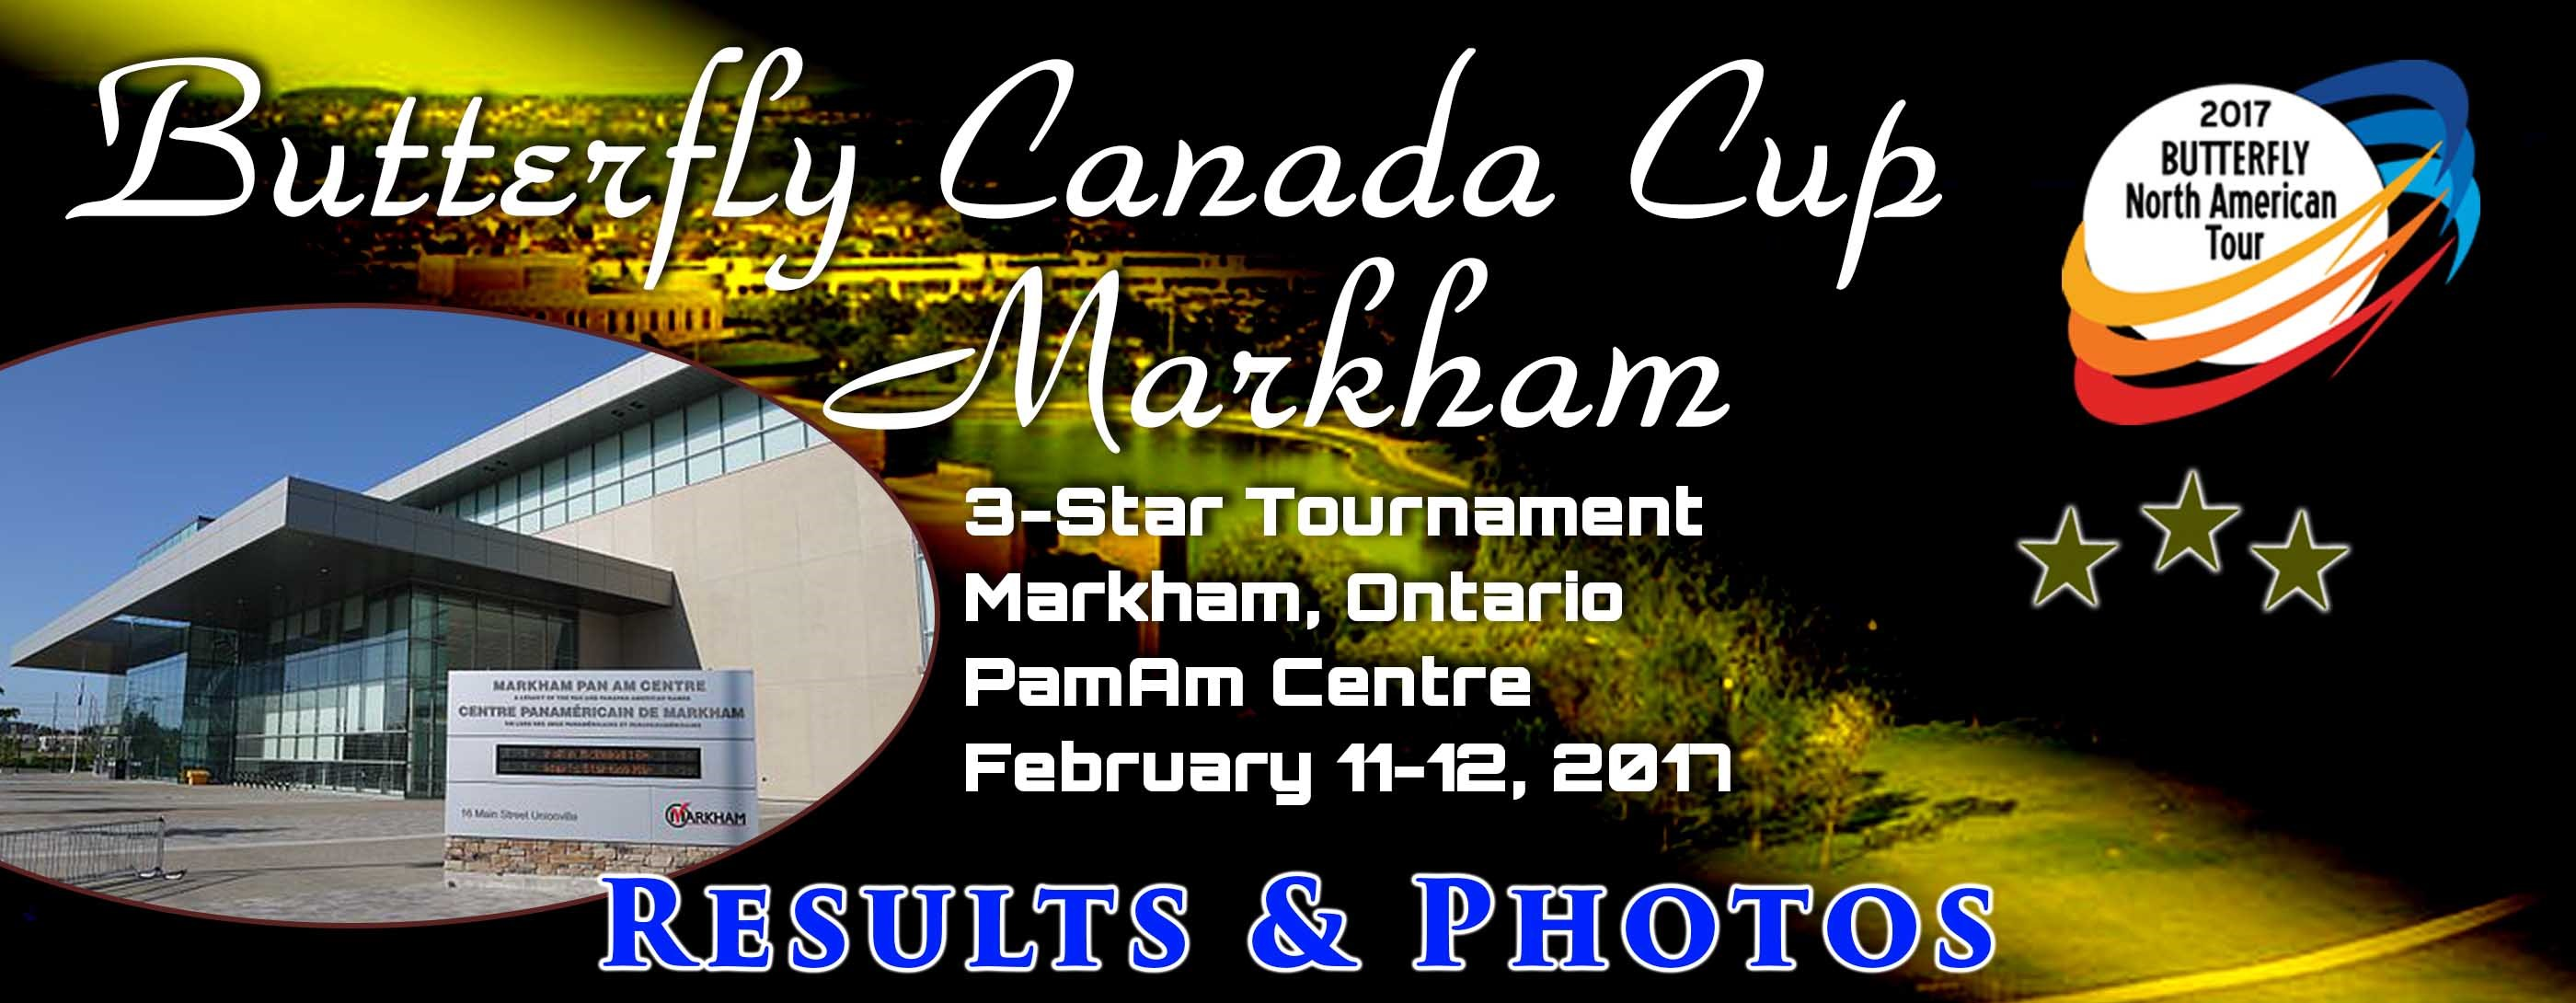 2017 Butterfly Canada Cup Markham: Photos and Results